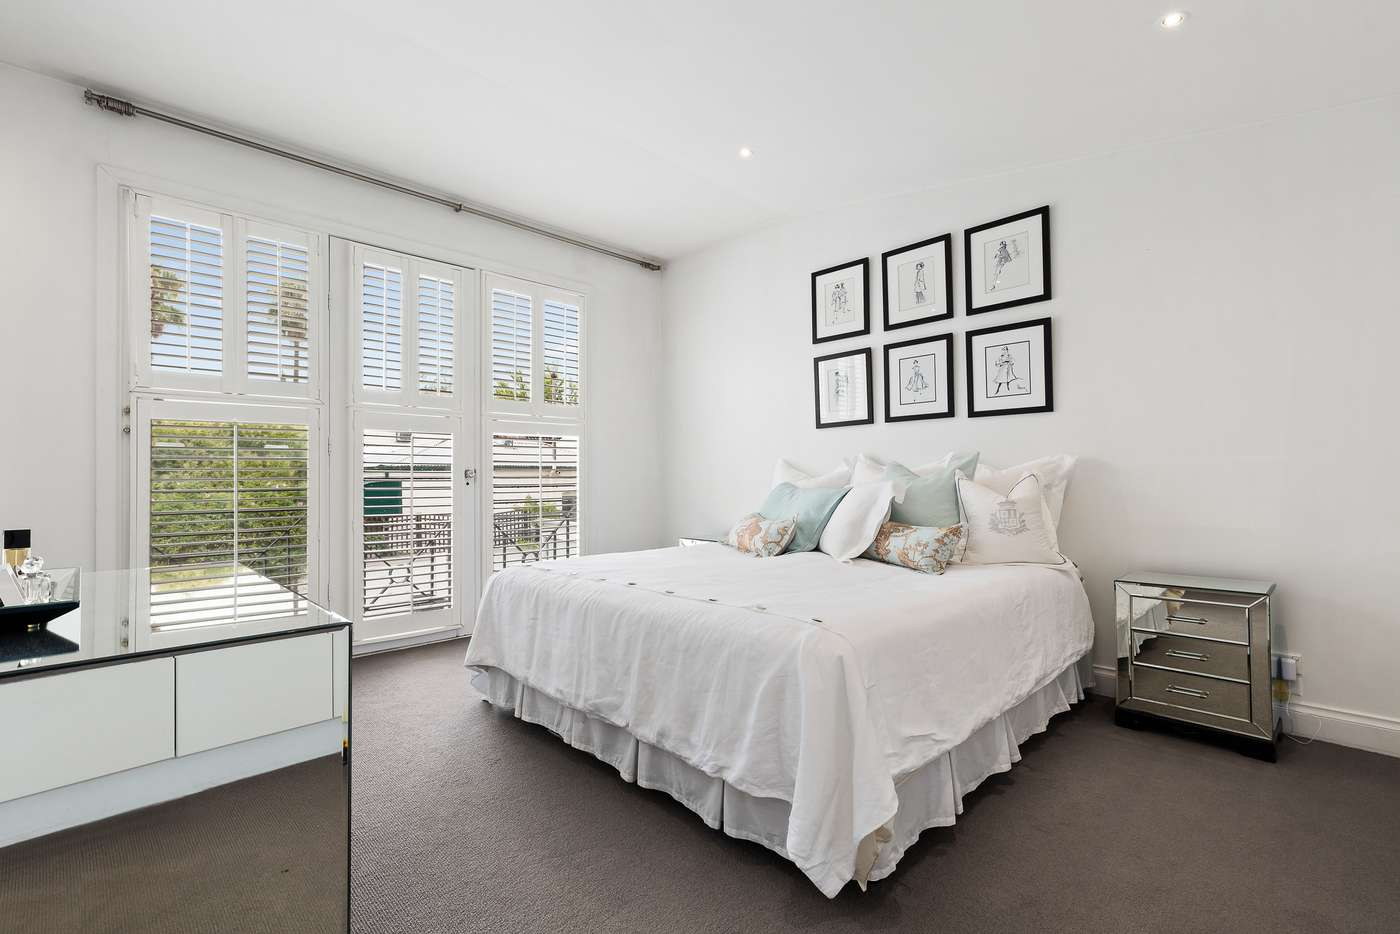 Sixth view of Homely apartment listing, 7/1 Brookville Road, Toorak VIC 3142